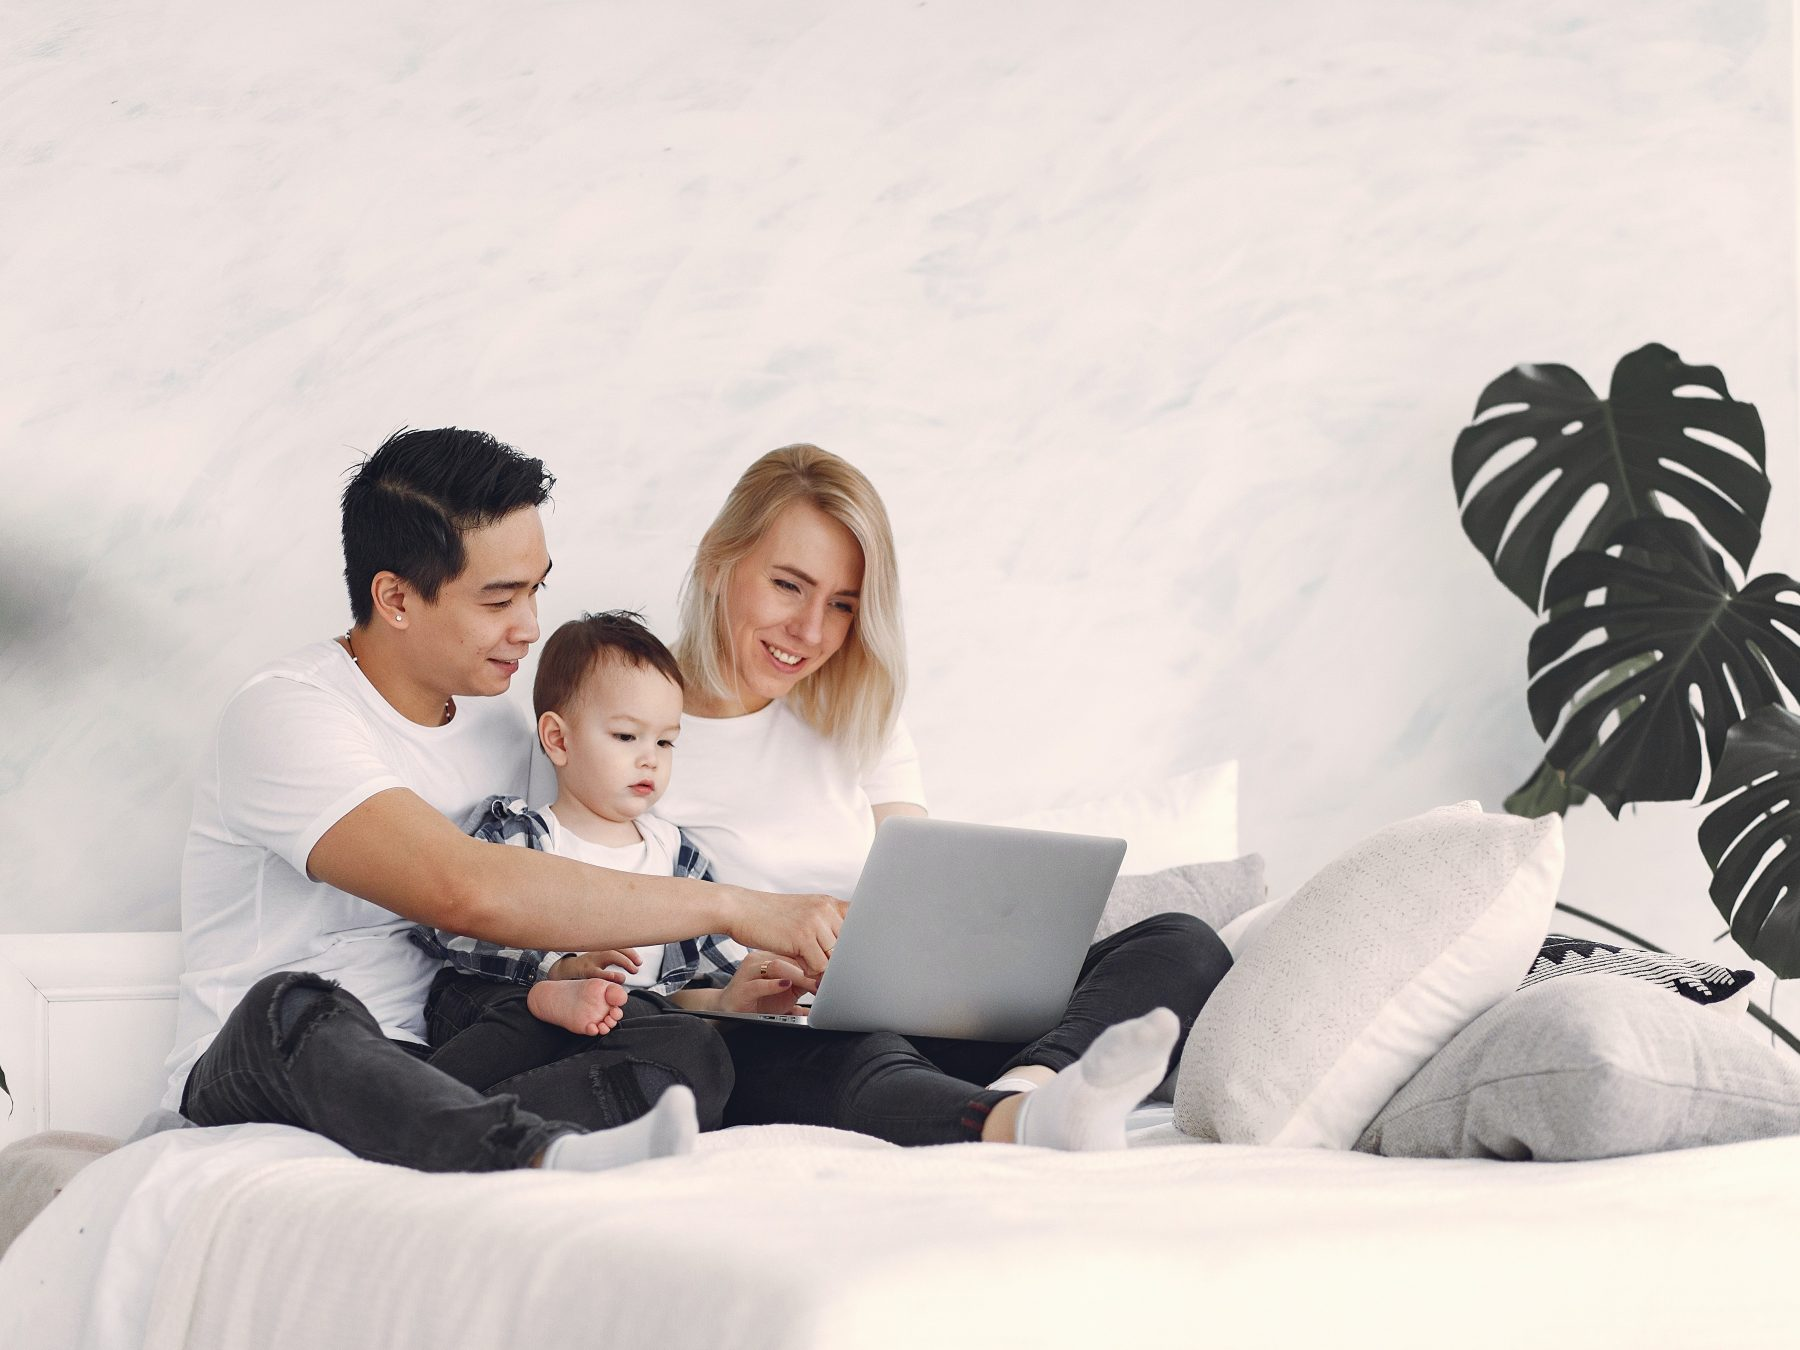 Man and woman sitting on the bed with their child 3912386